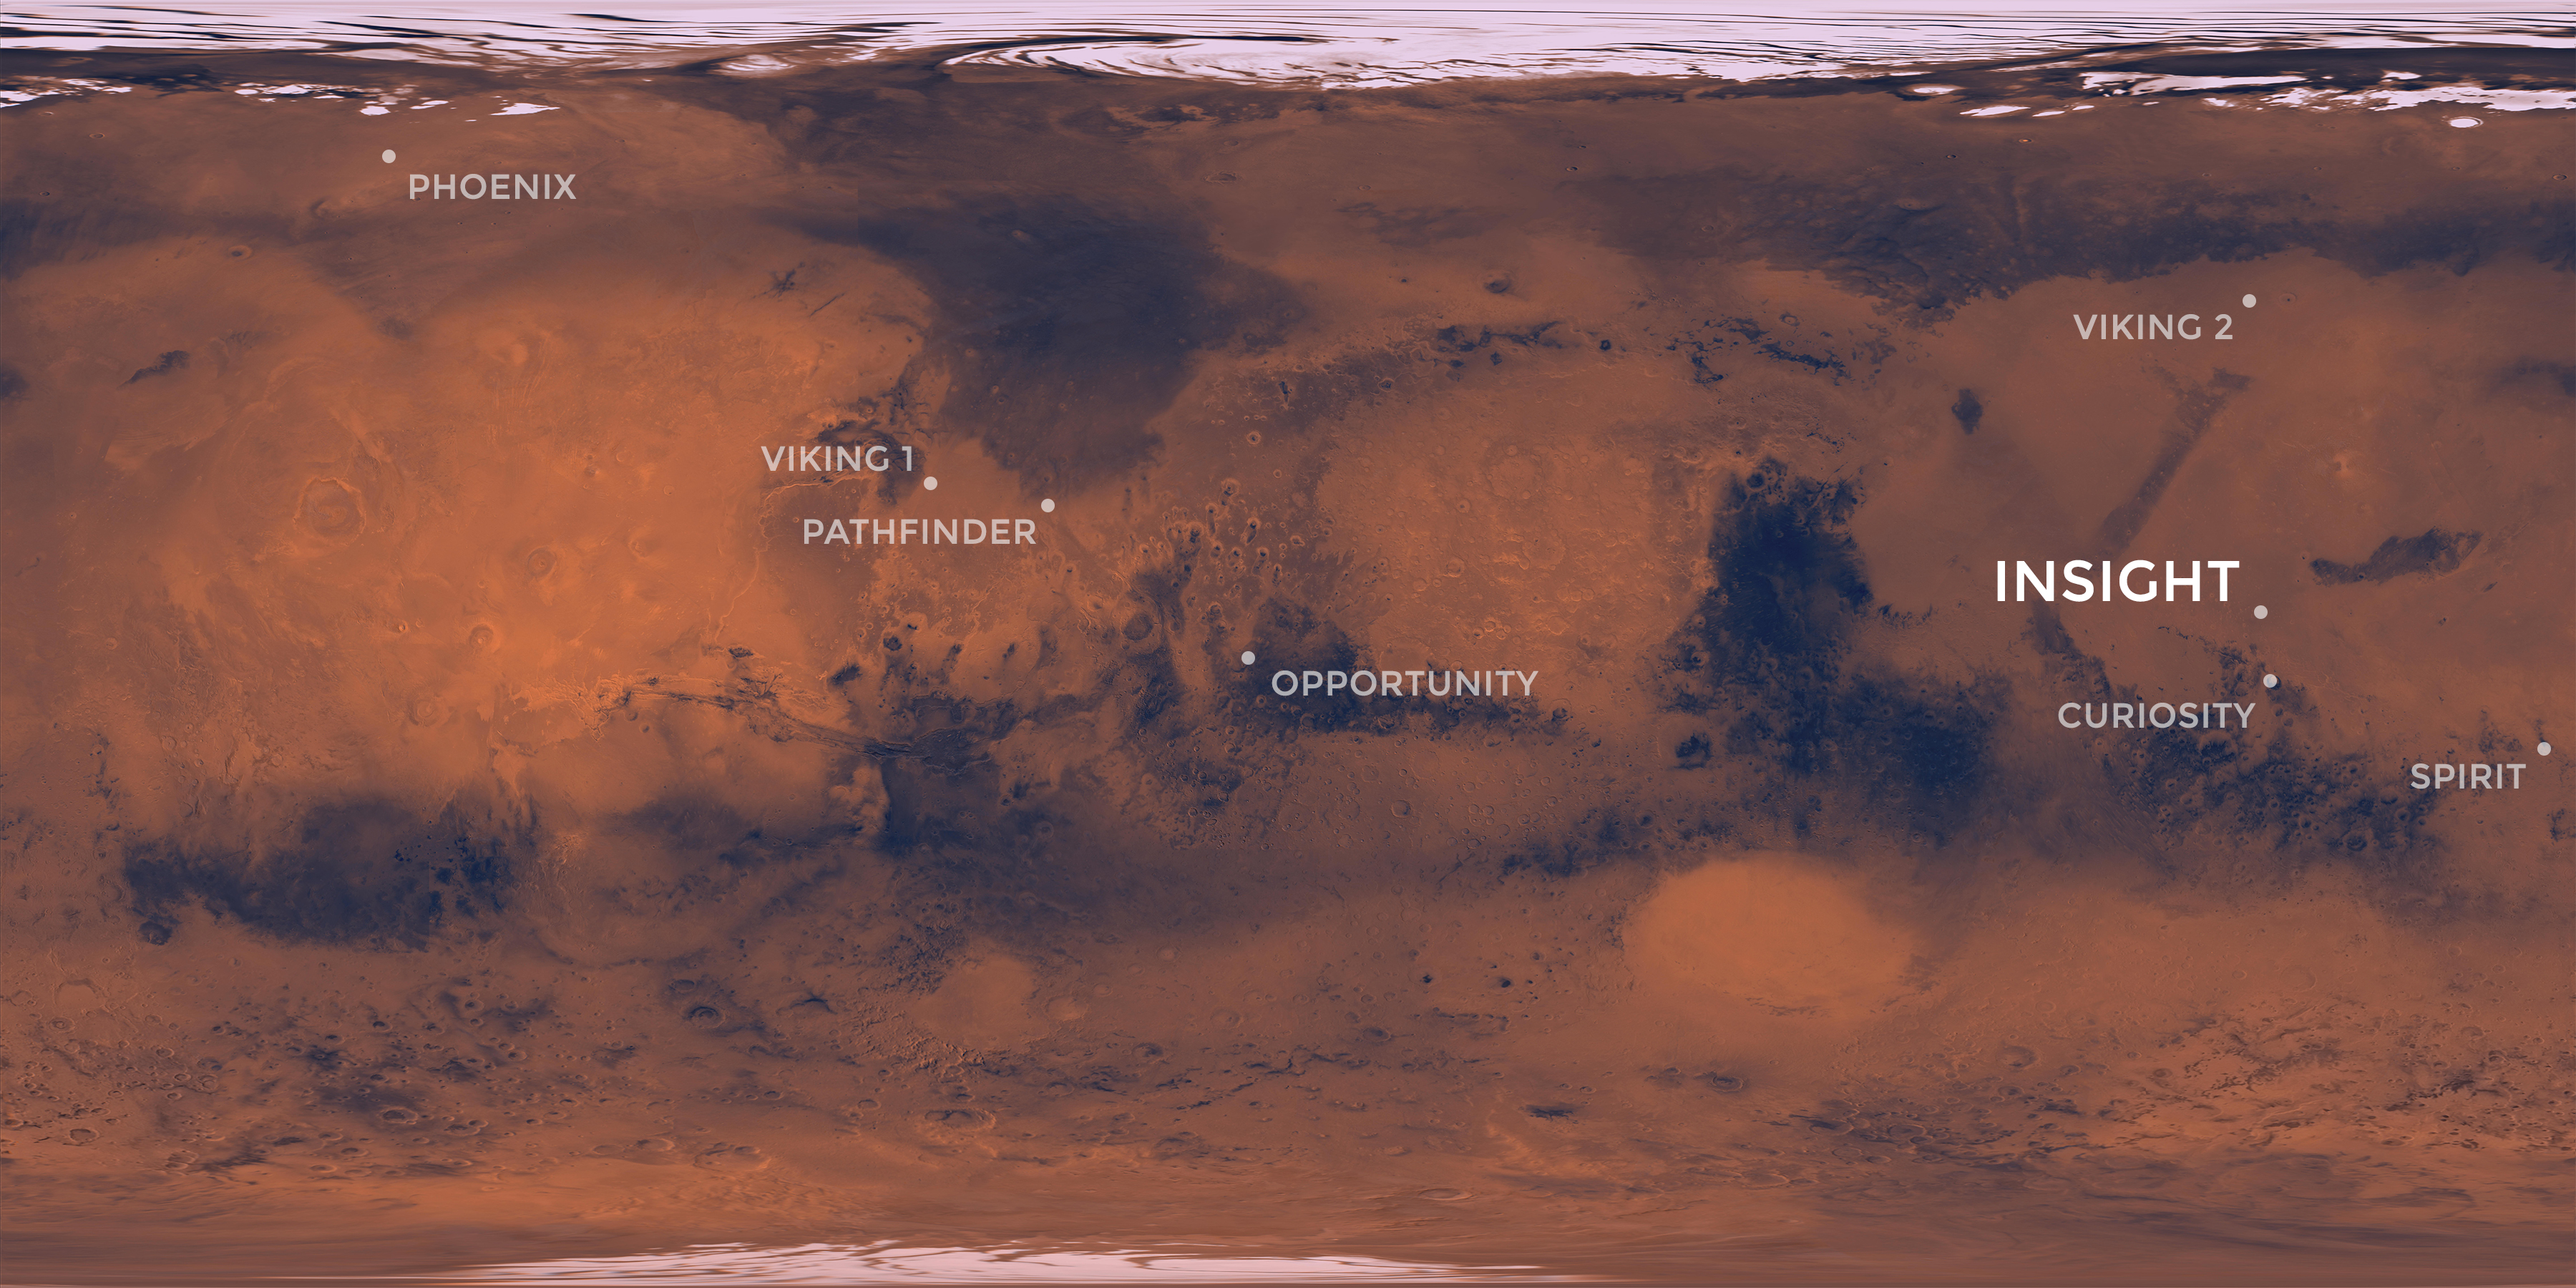 Map of Mars with spacecraft landing sites labeled.